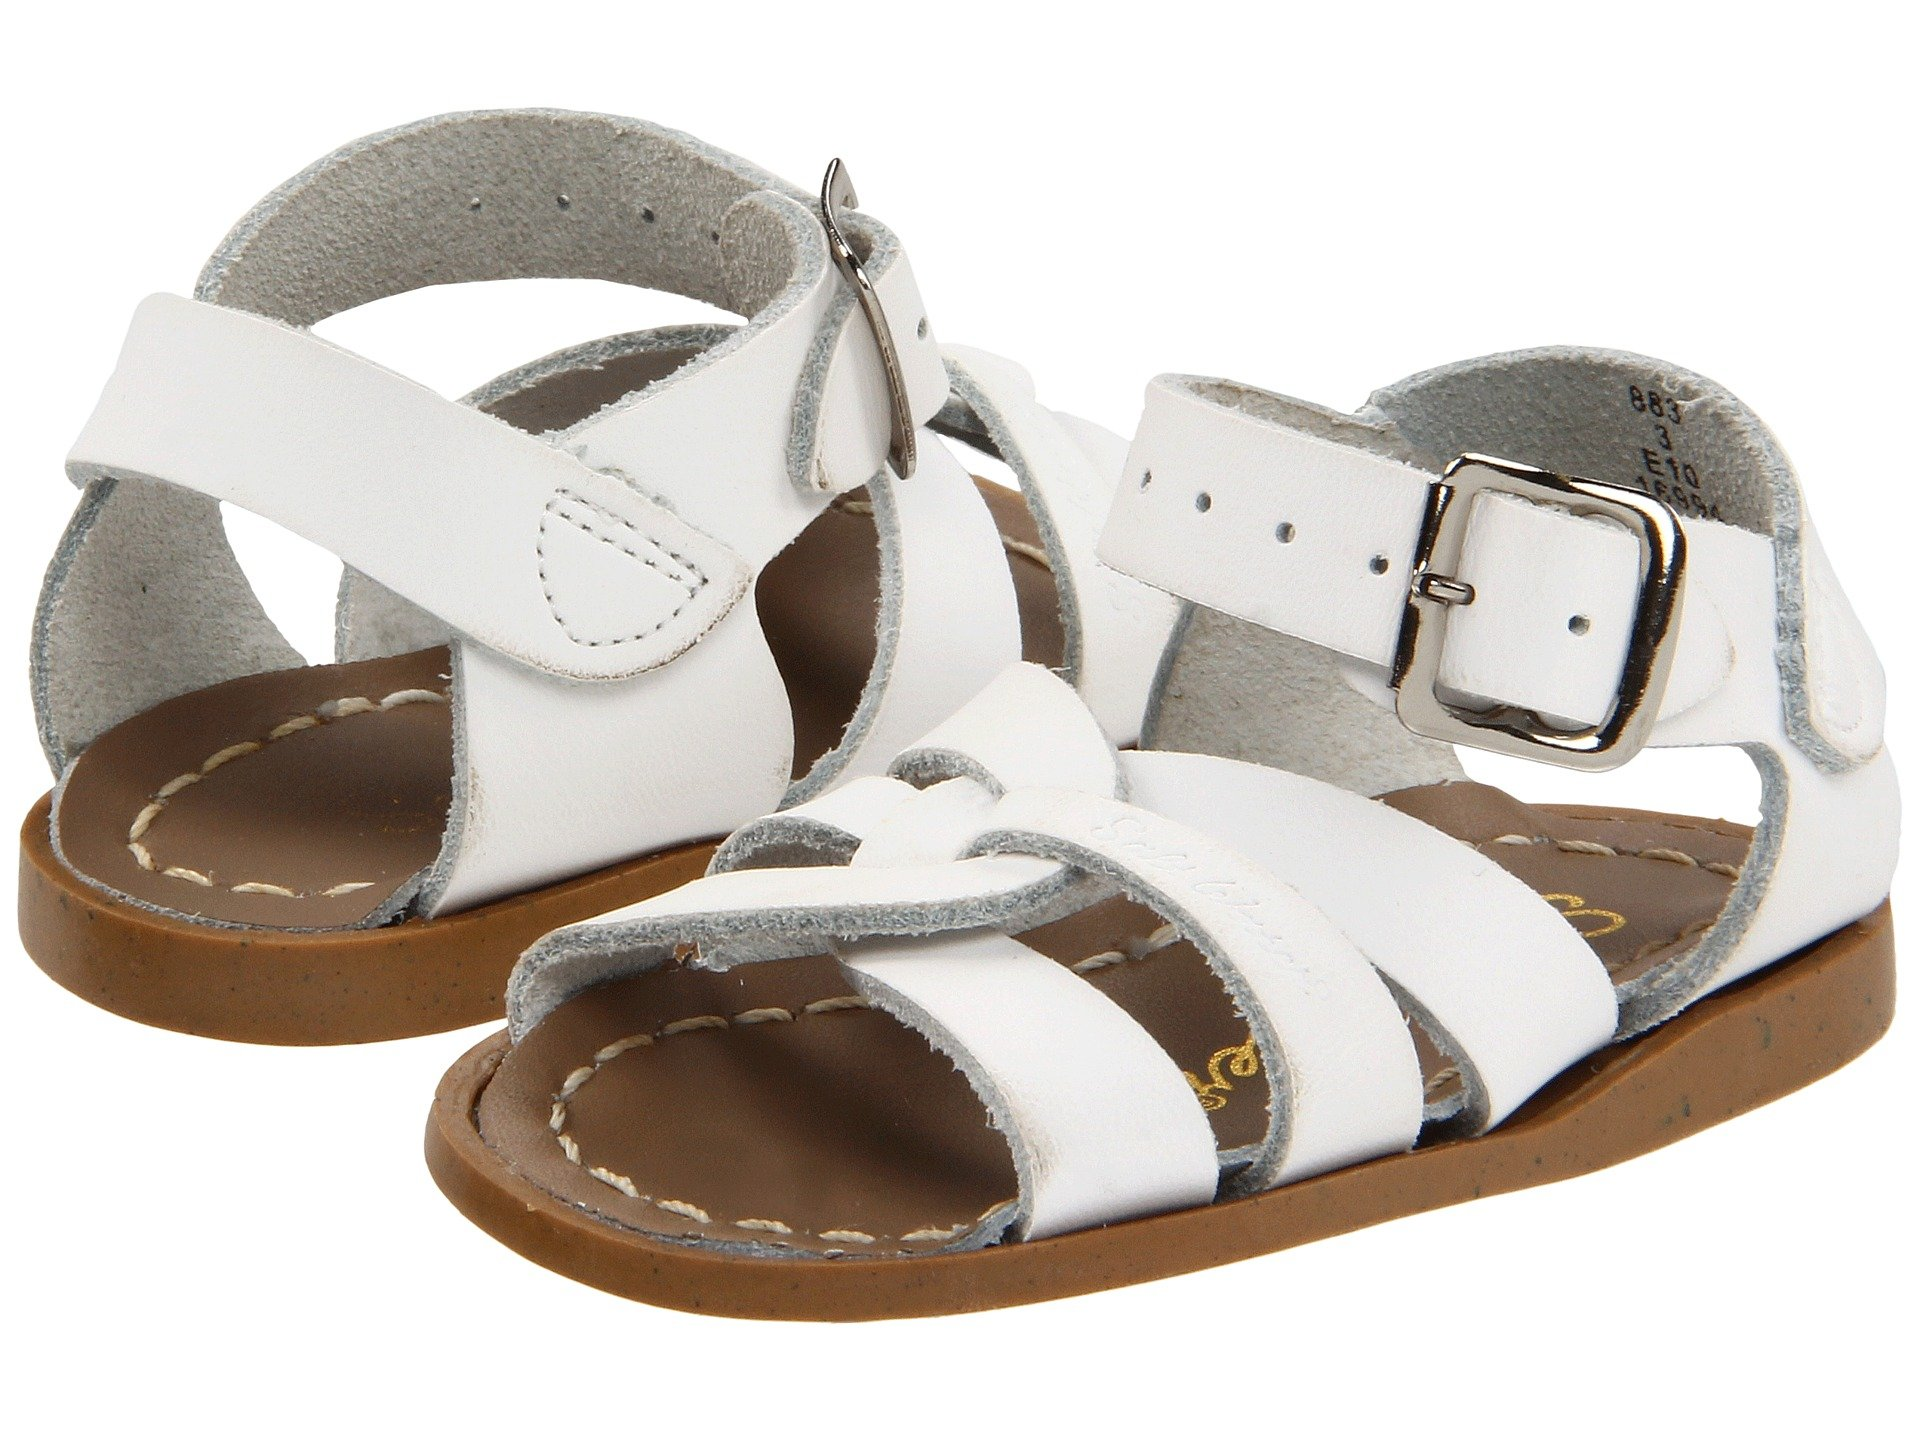 Salt Water Sandal By Hoy Shoes The Original Sandal Infant